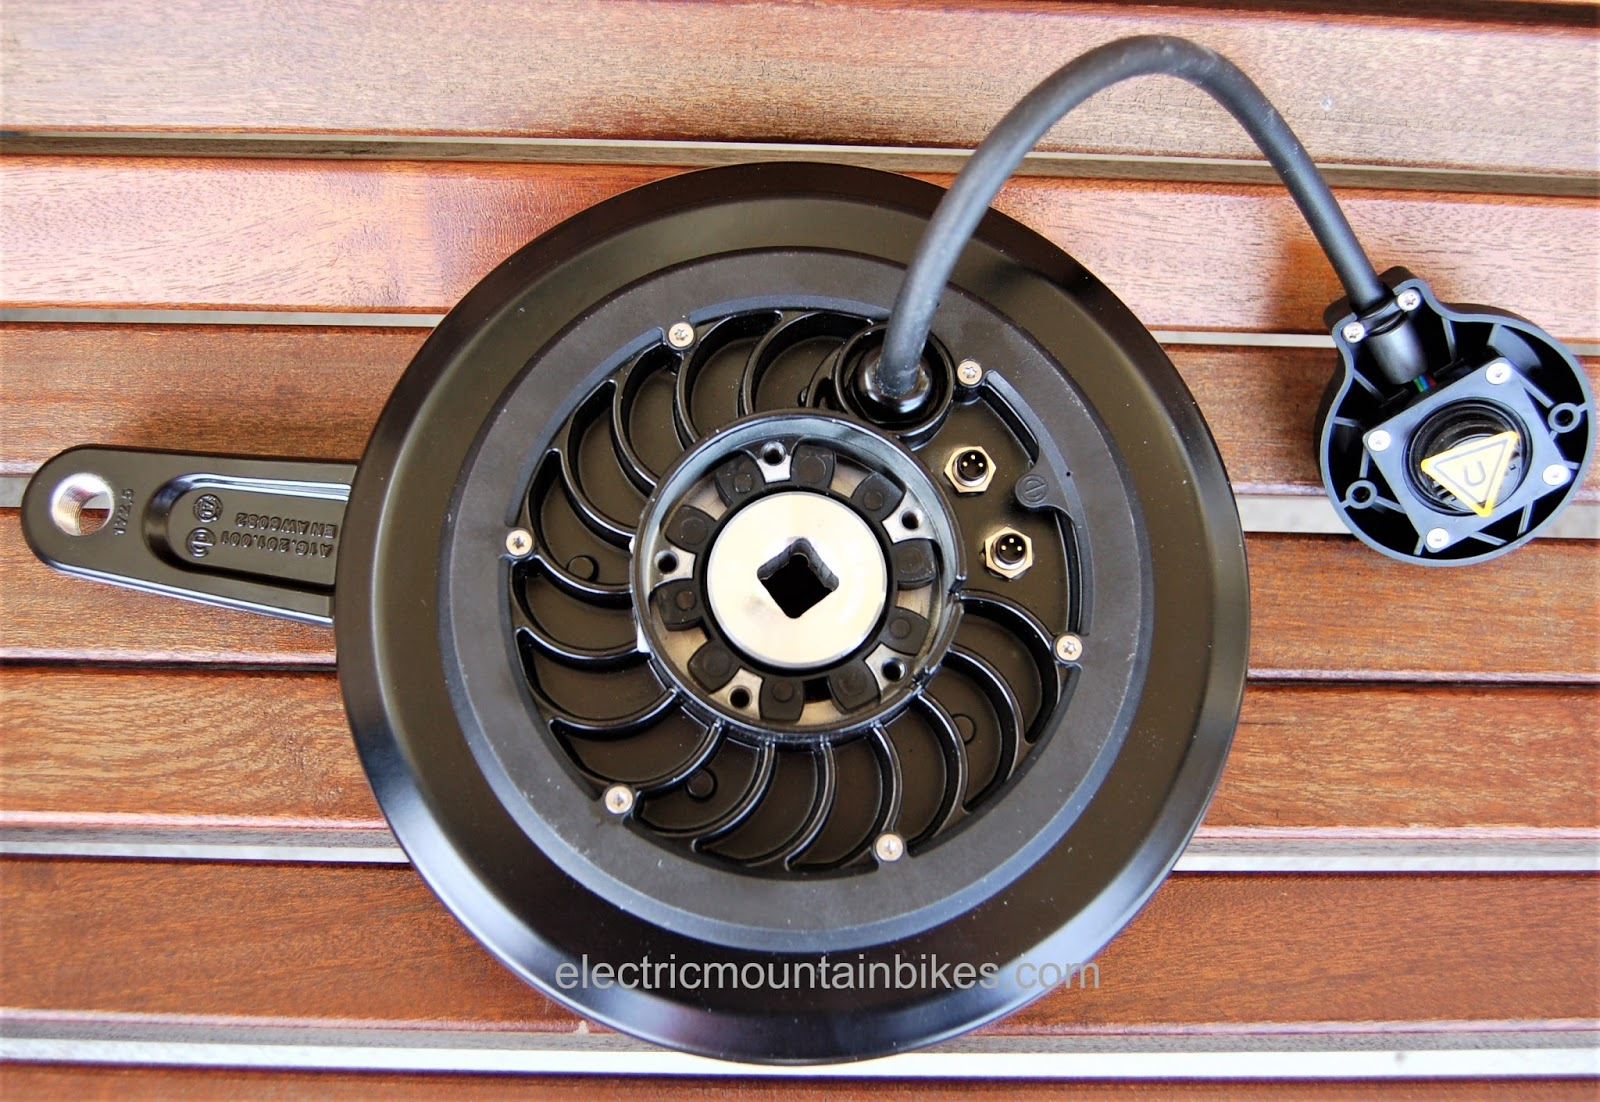 Thruster Motorguide Trolling Motor A266251 And Up Wiring Harness And